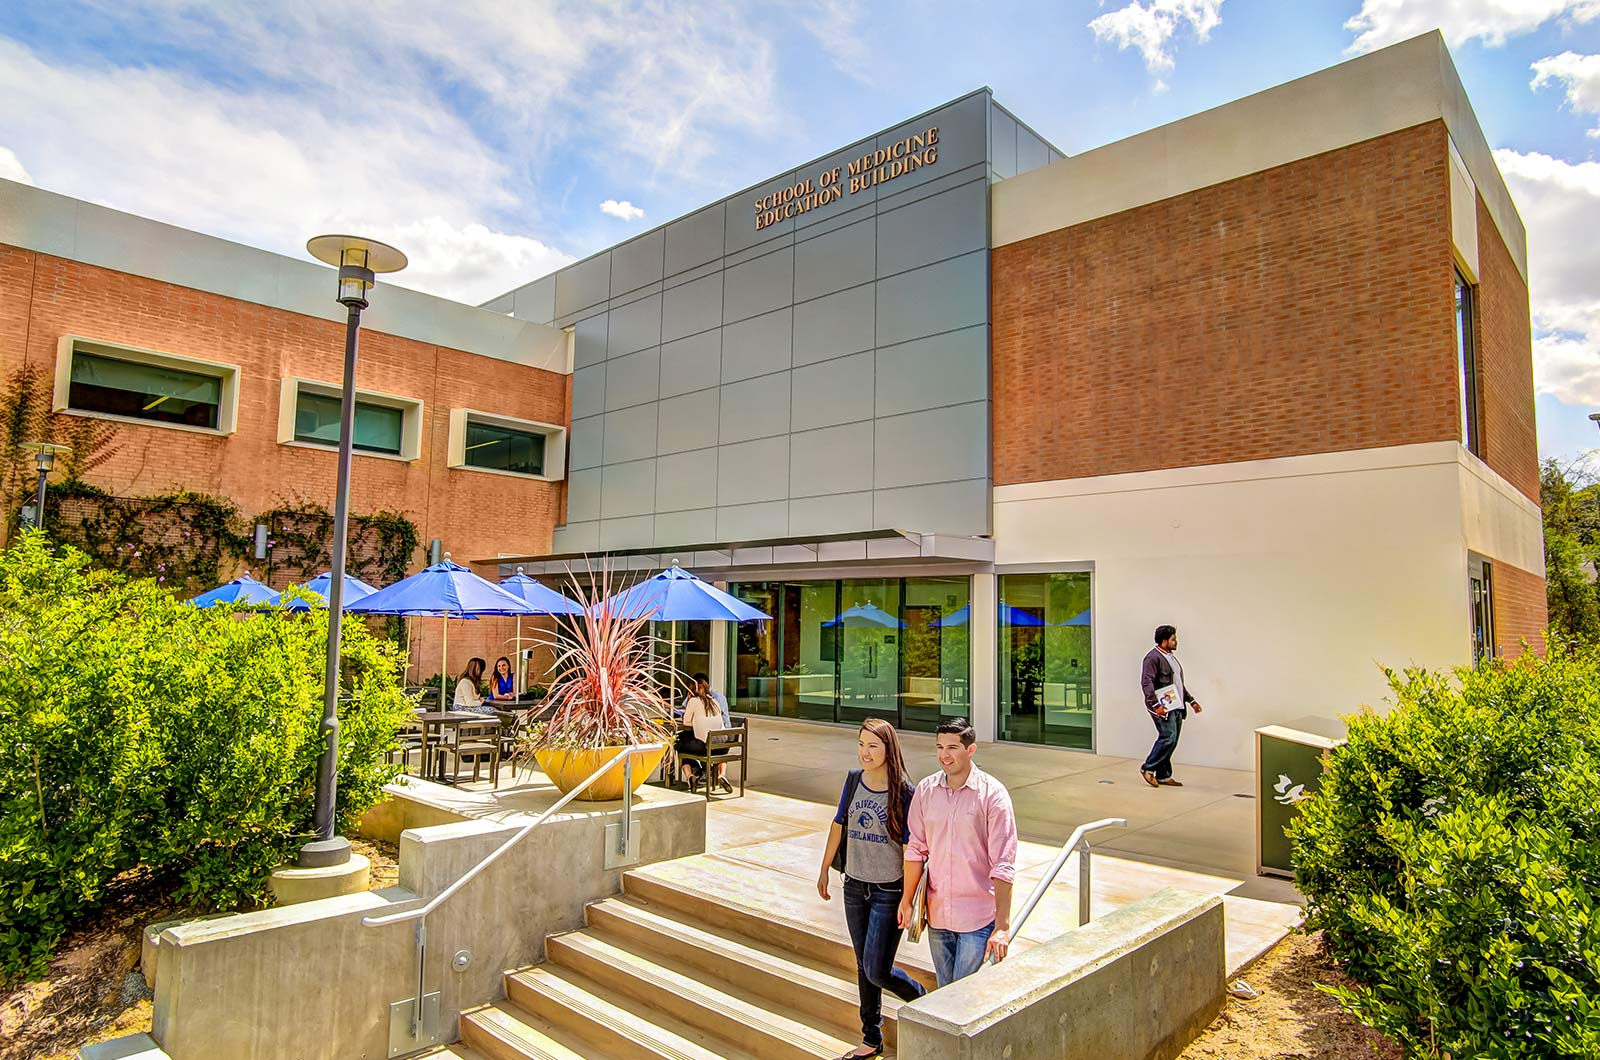 Science-Lab-At-College-360-Tours-Property-Photography-Real-Estate-Photography-Service-Drone-Photography-Company-Aerial-Drone-Photography-Company